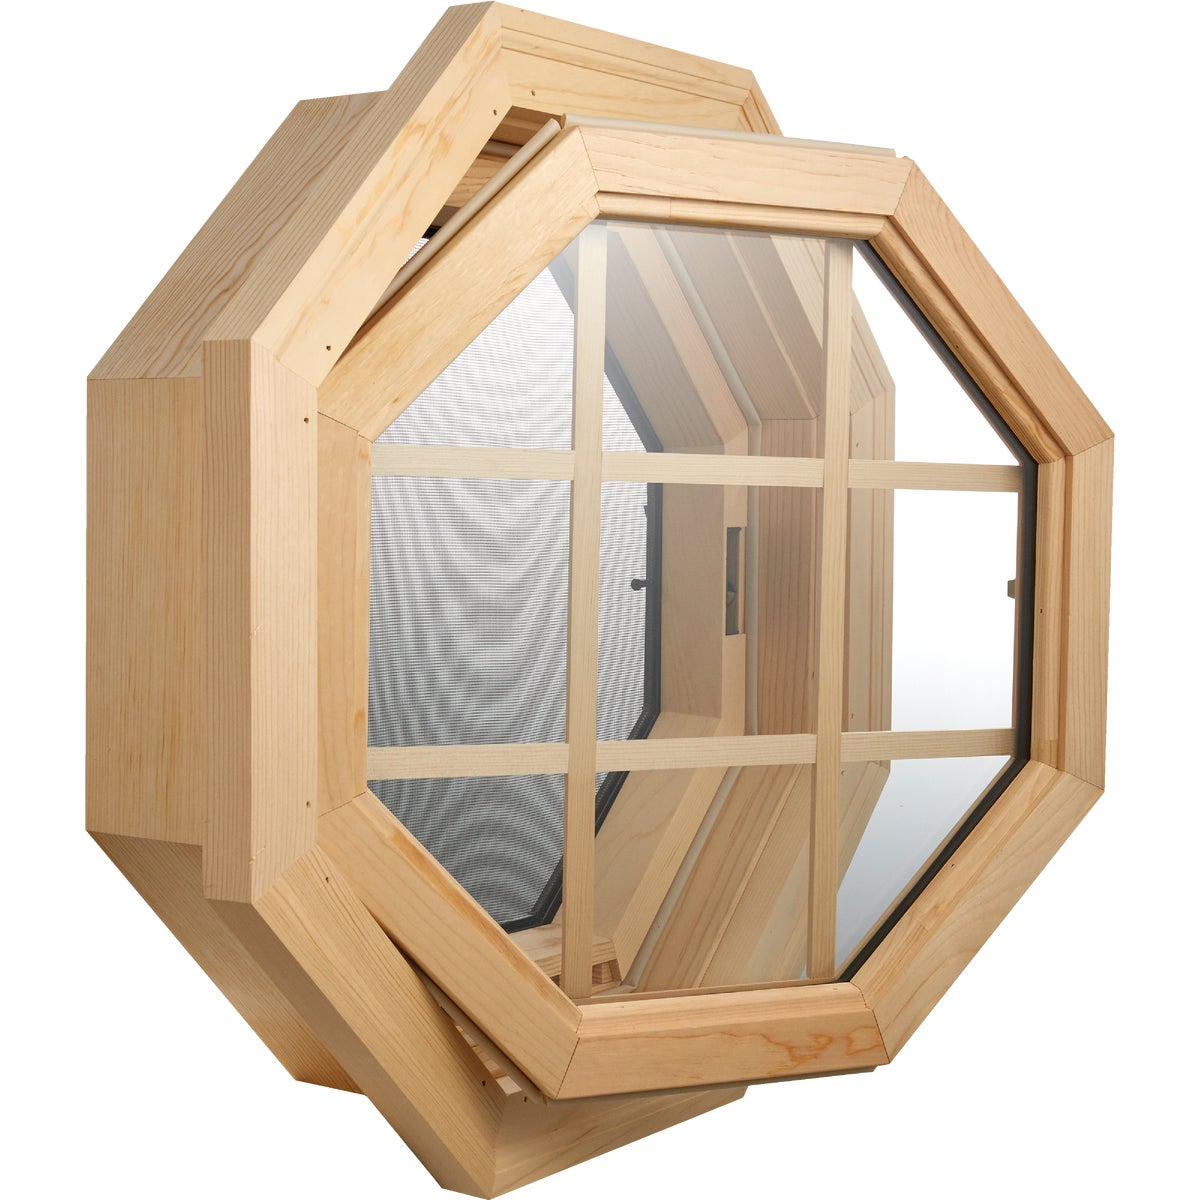 WD OCTAGON VENT WINDOW - 11112 by Century Speci Window